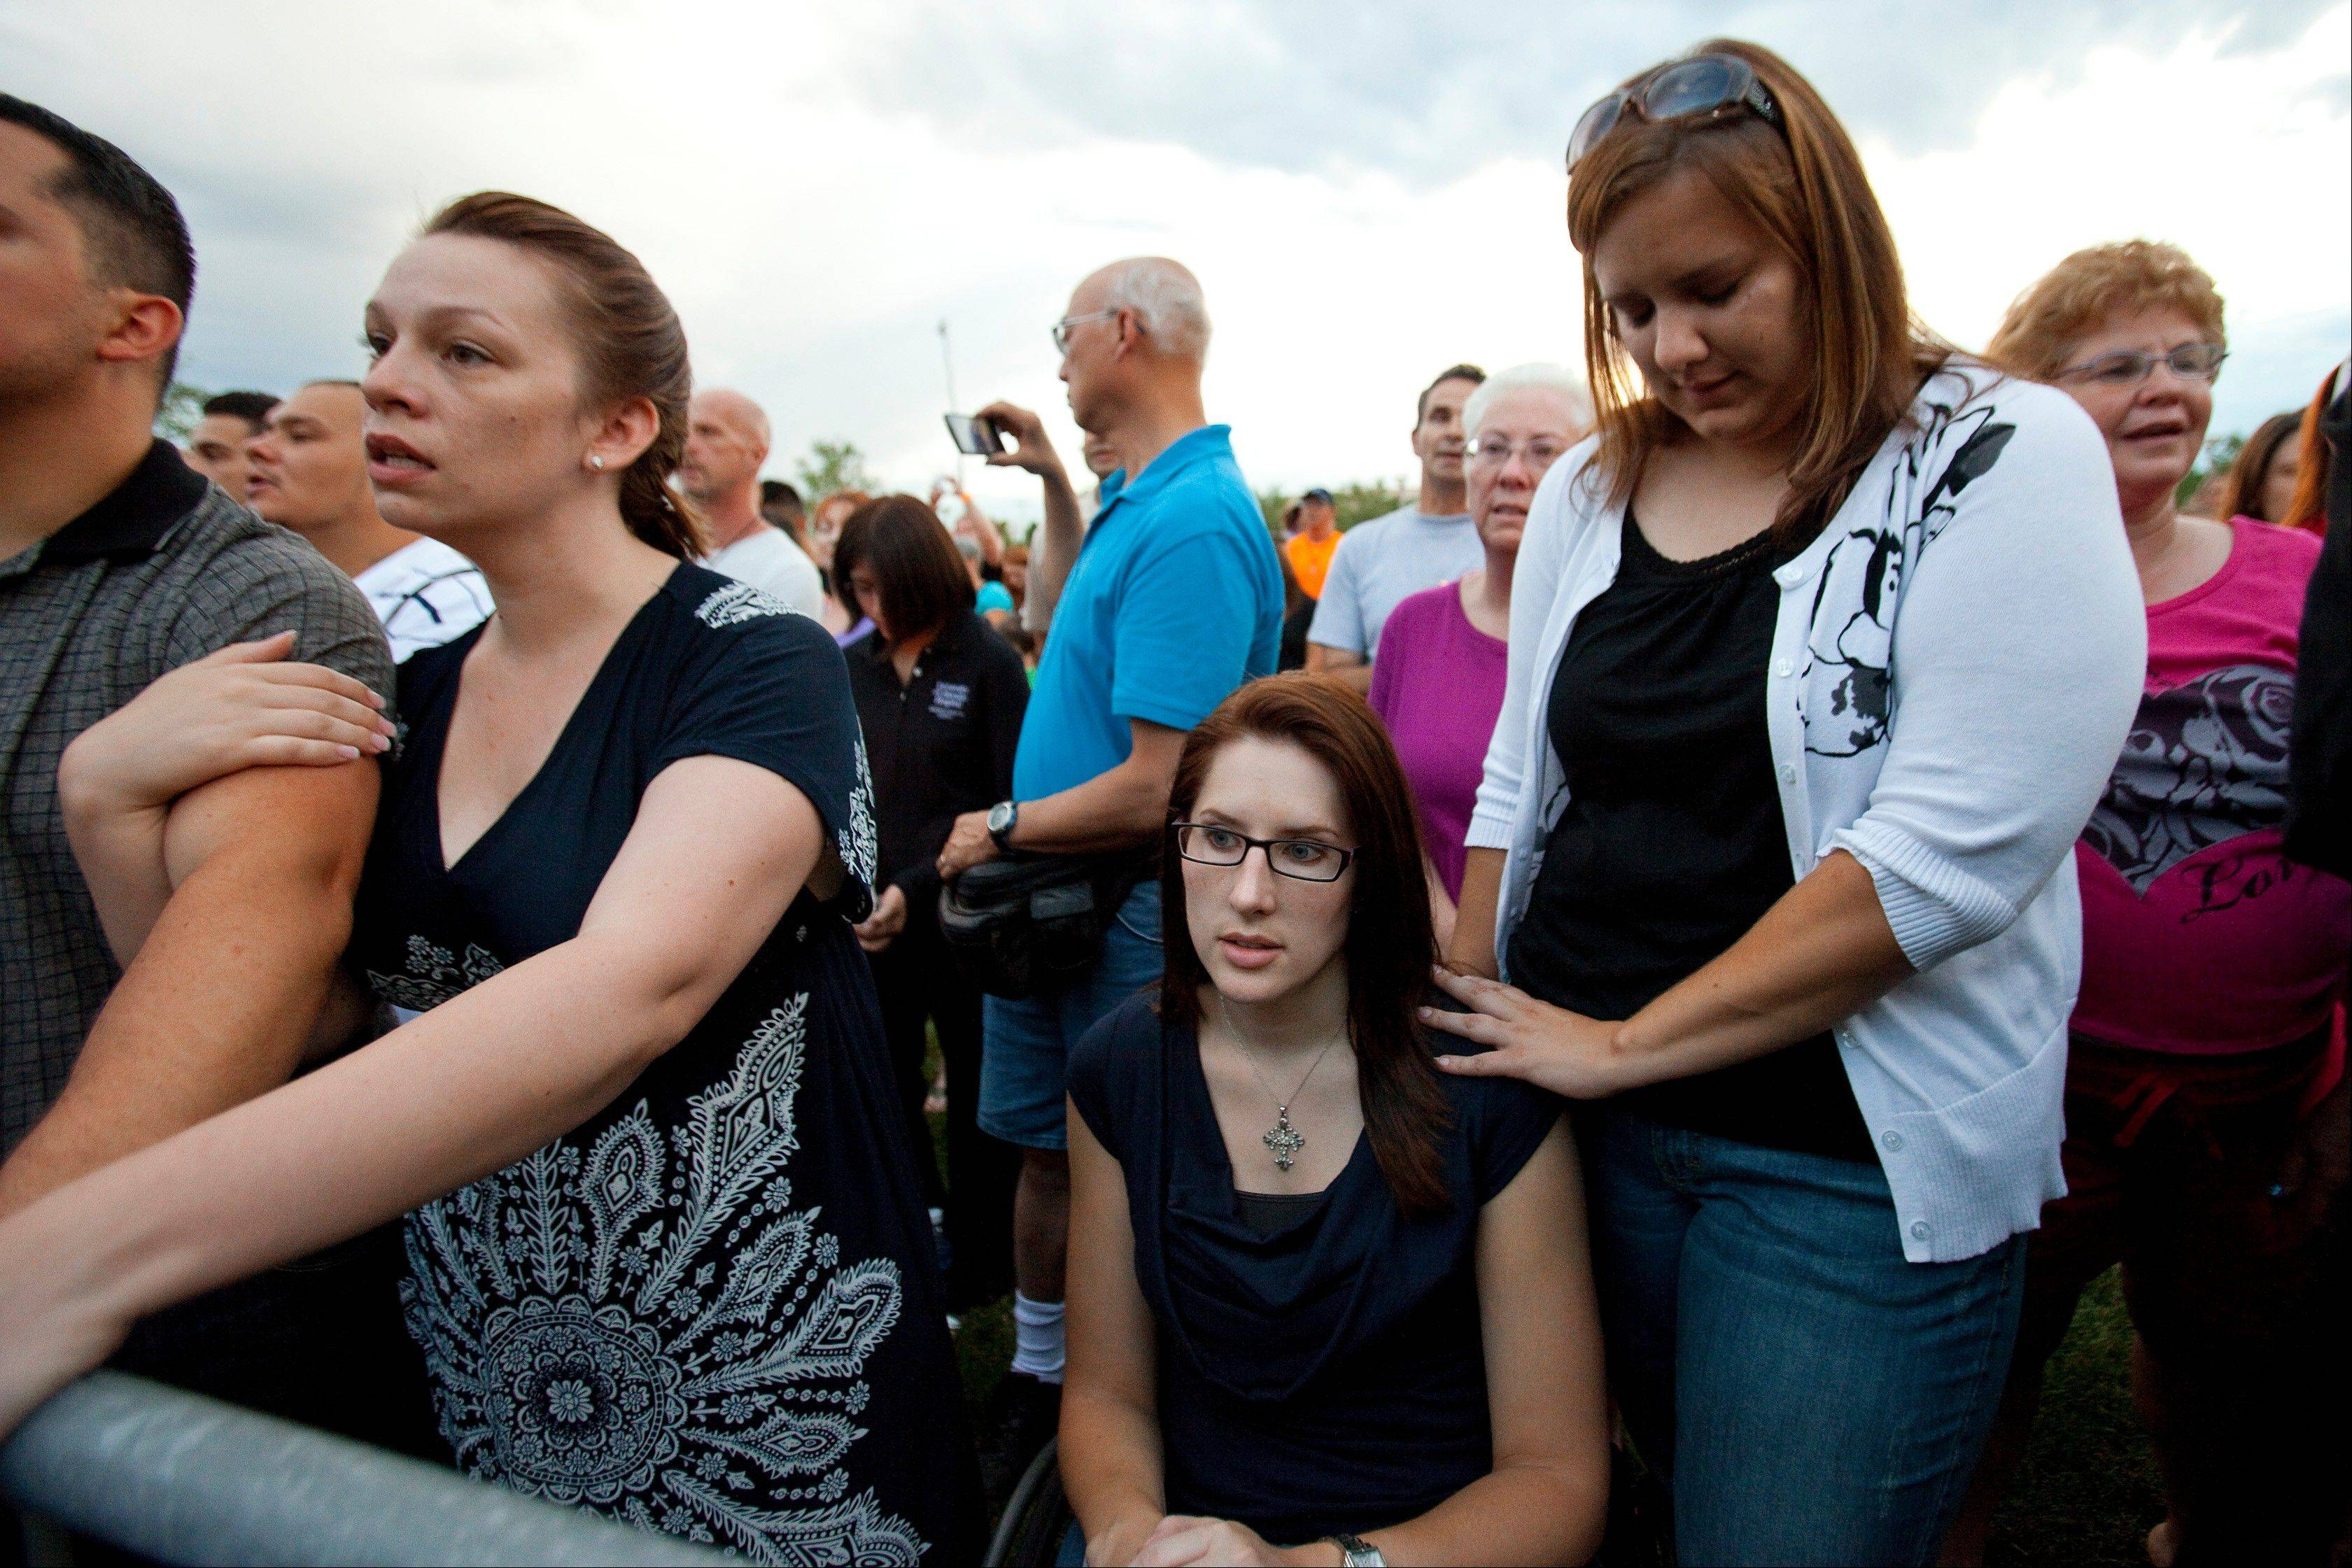 Anne Marie Hochhalter, 30, bottom, a paralyzed victim of the Columbine High School tragedy more than 12 years ago, and her friend Roxy Chesser, 30, second from right, attend a prayer vigil Sunday in Aurora, Colo., held to remember the lost and injured in Friday�s mass shooting at a movie theater.